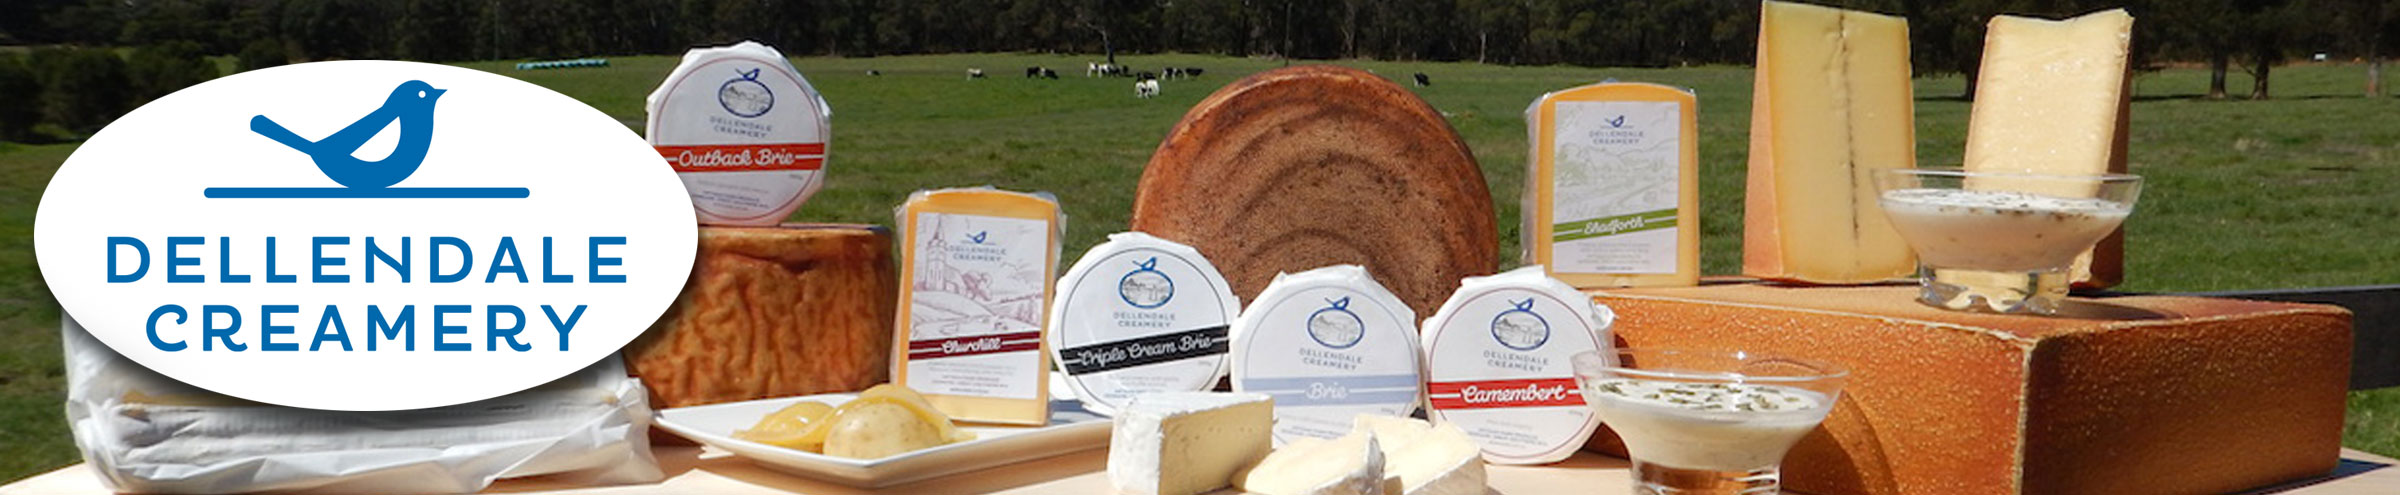 Dellendale Creamery Products